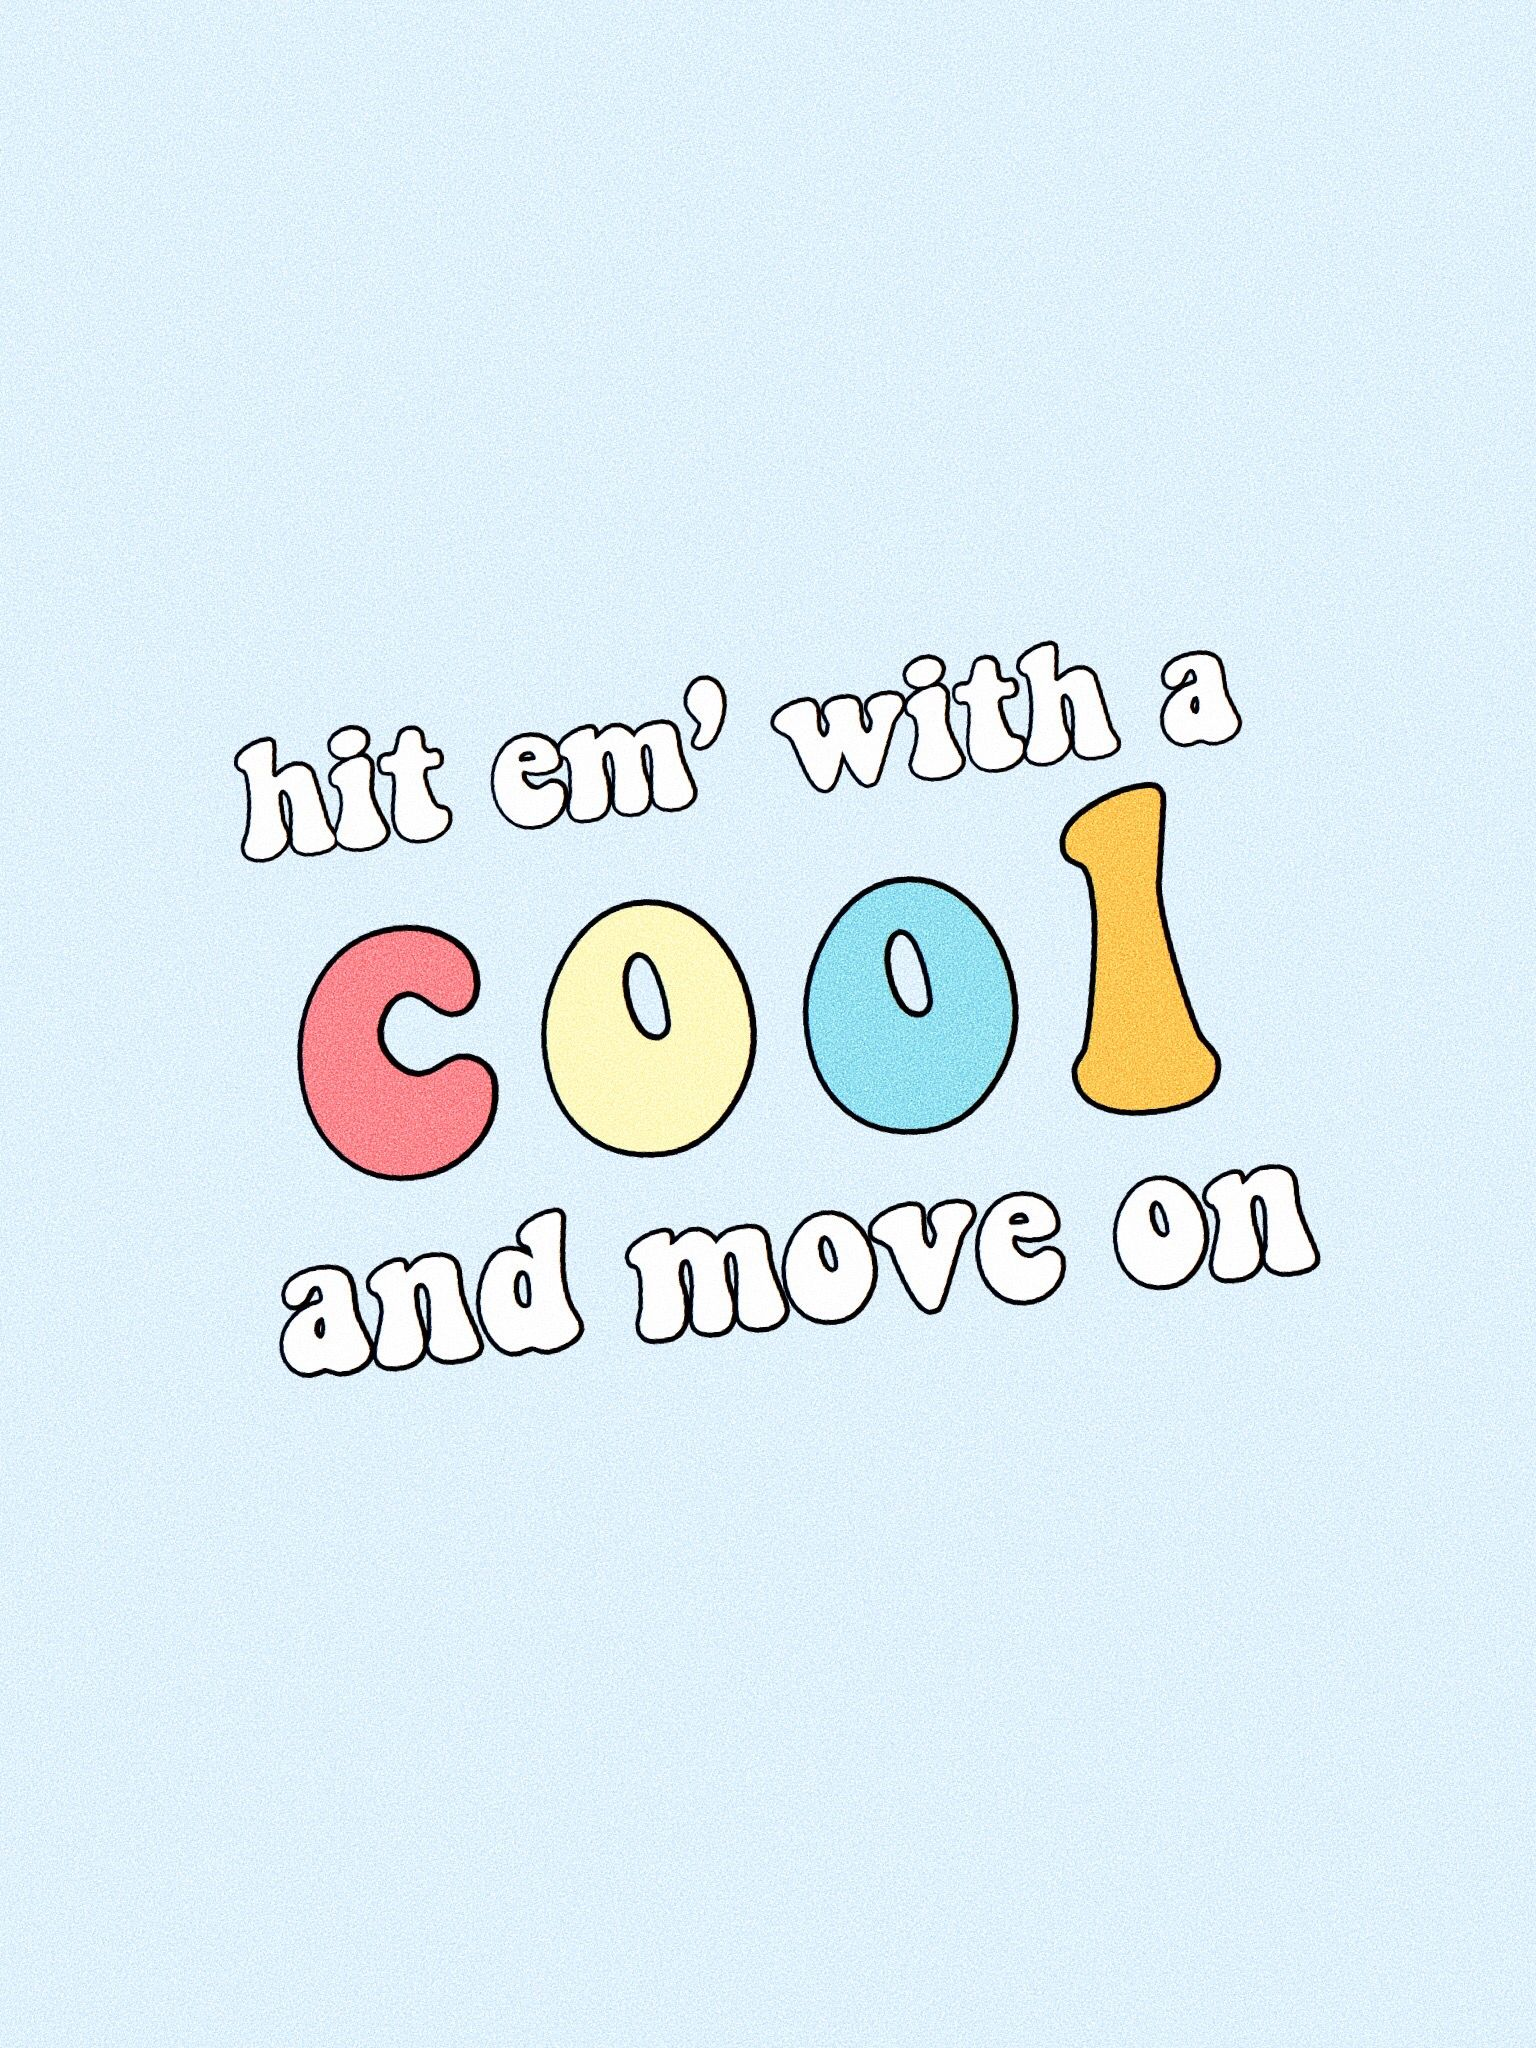 hit em' with a cool and move on quote words inspire mood